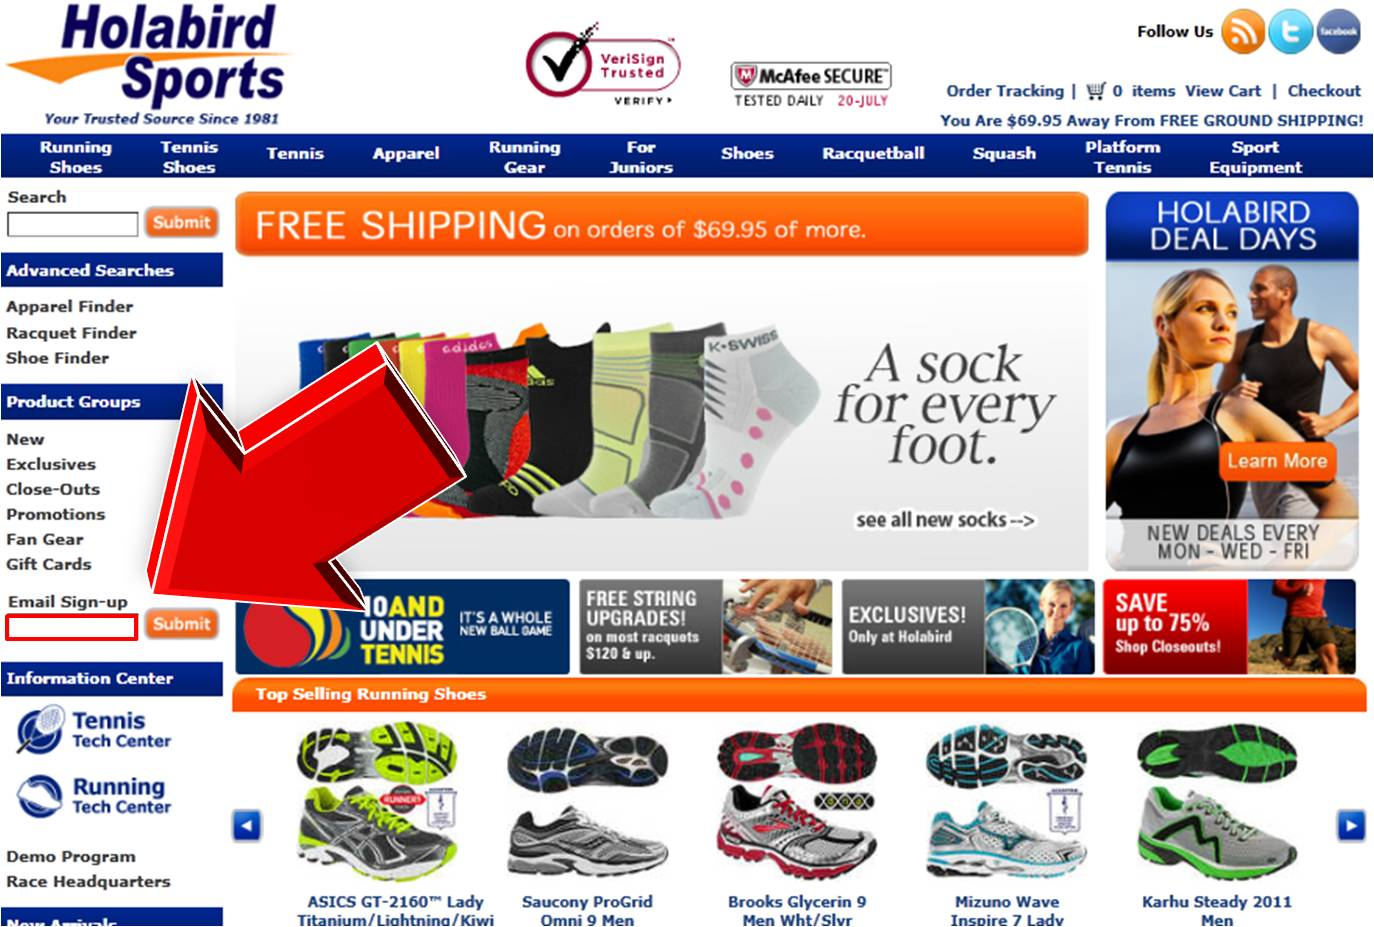 Holabird sports coupon code